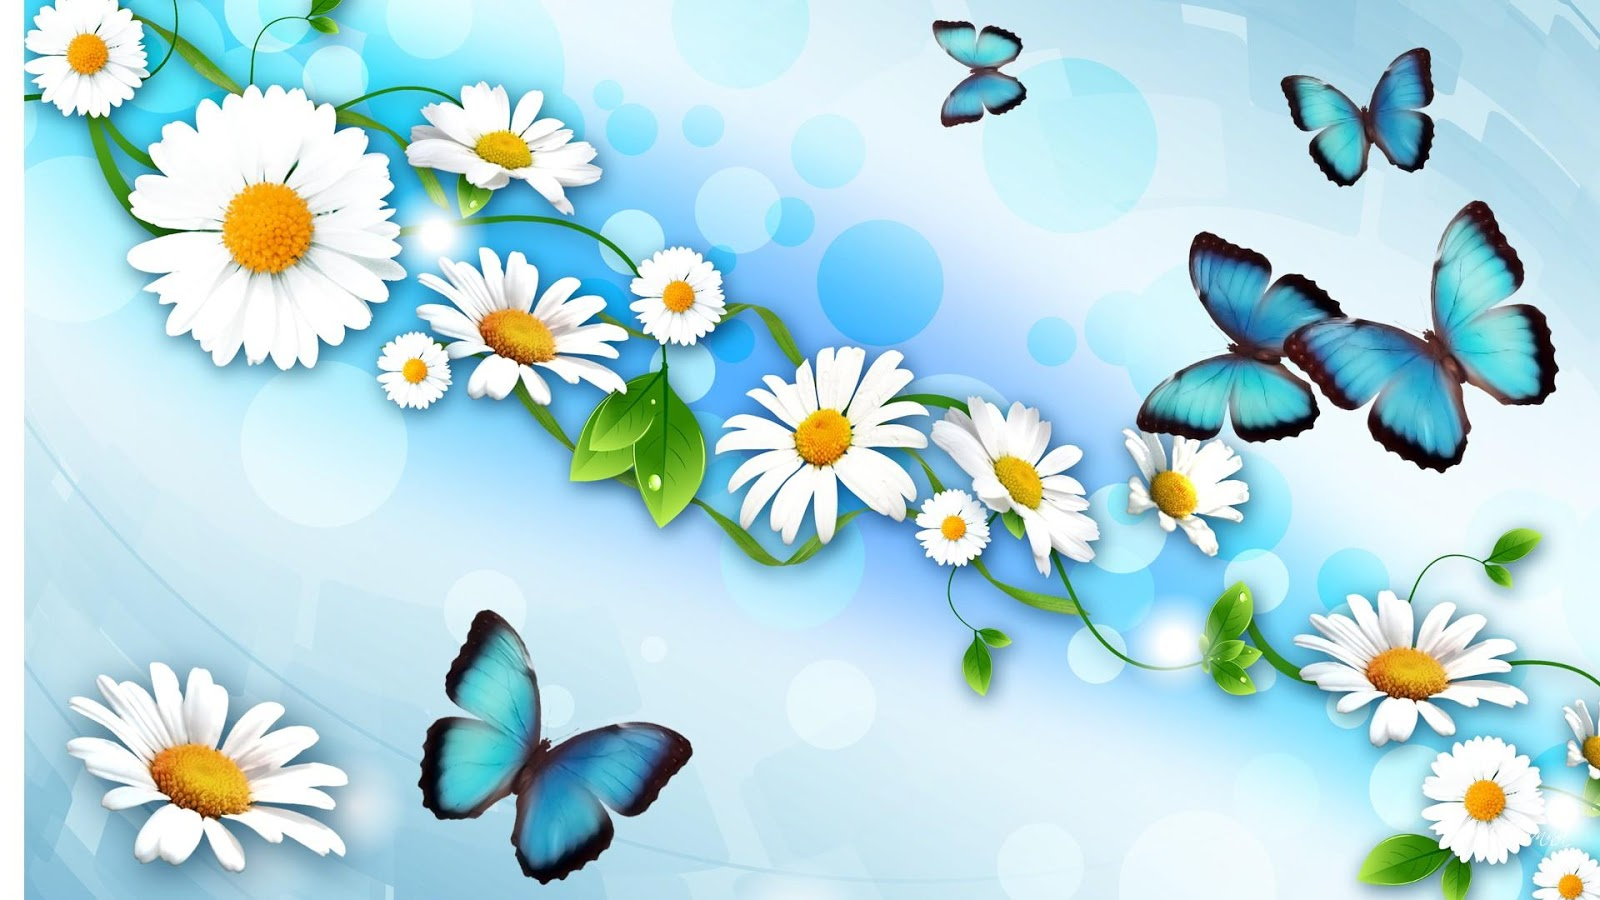 Garden Wall Stickers Banco De Imagenes Y Fotos Gratis Wallpapers De Mariposas 4